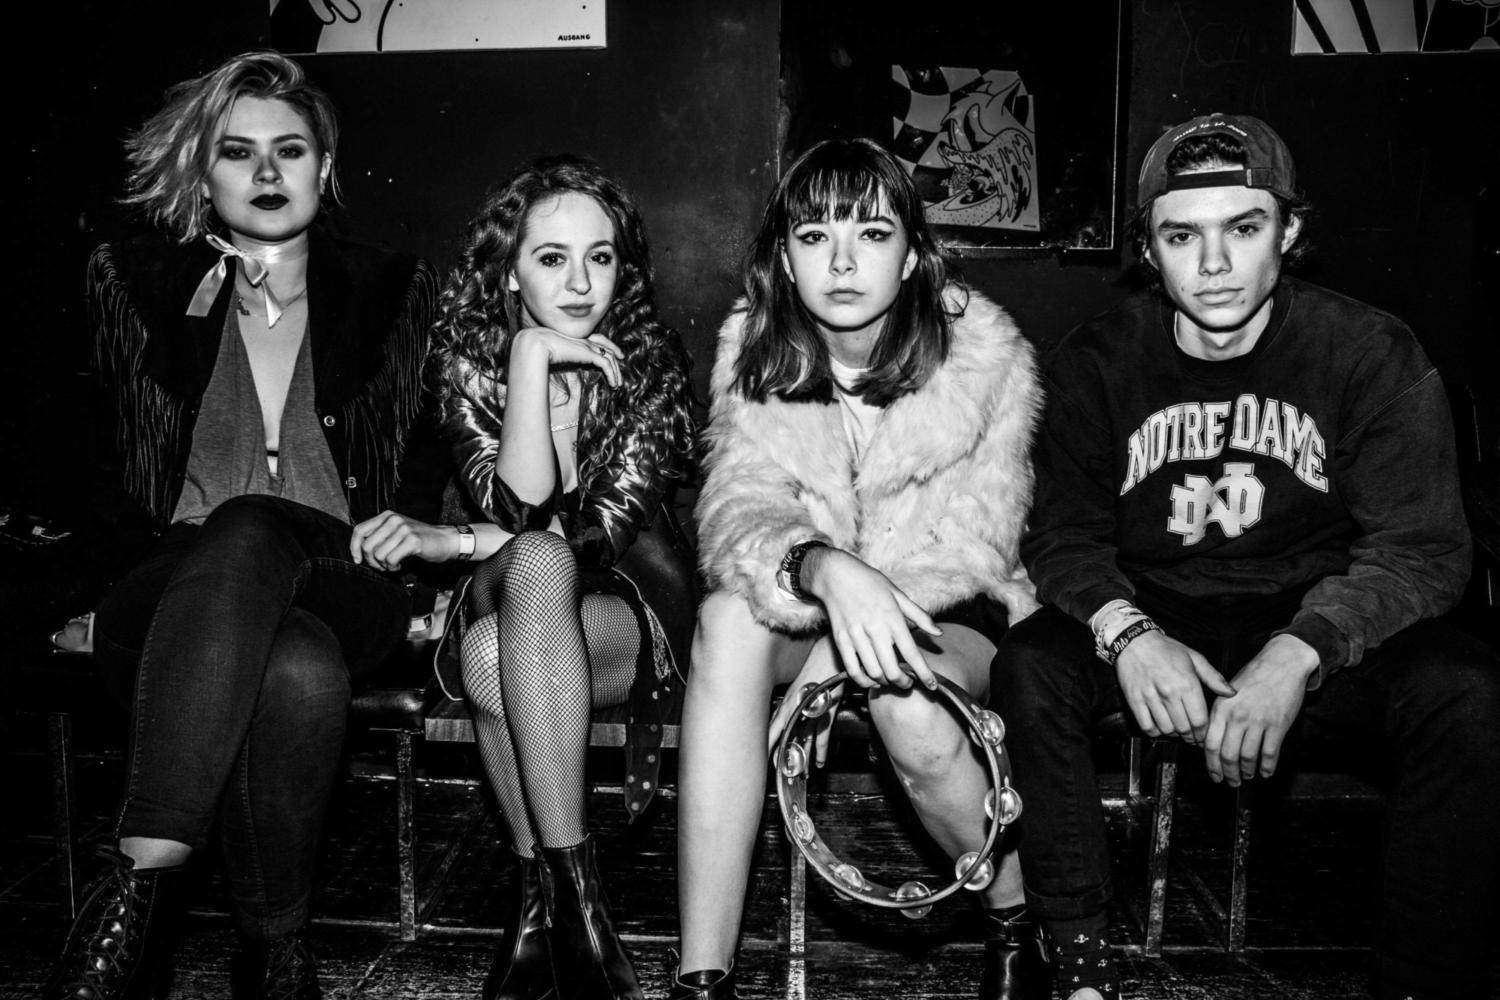 Lots of new bands for this year's Reeperbahn Festival